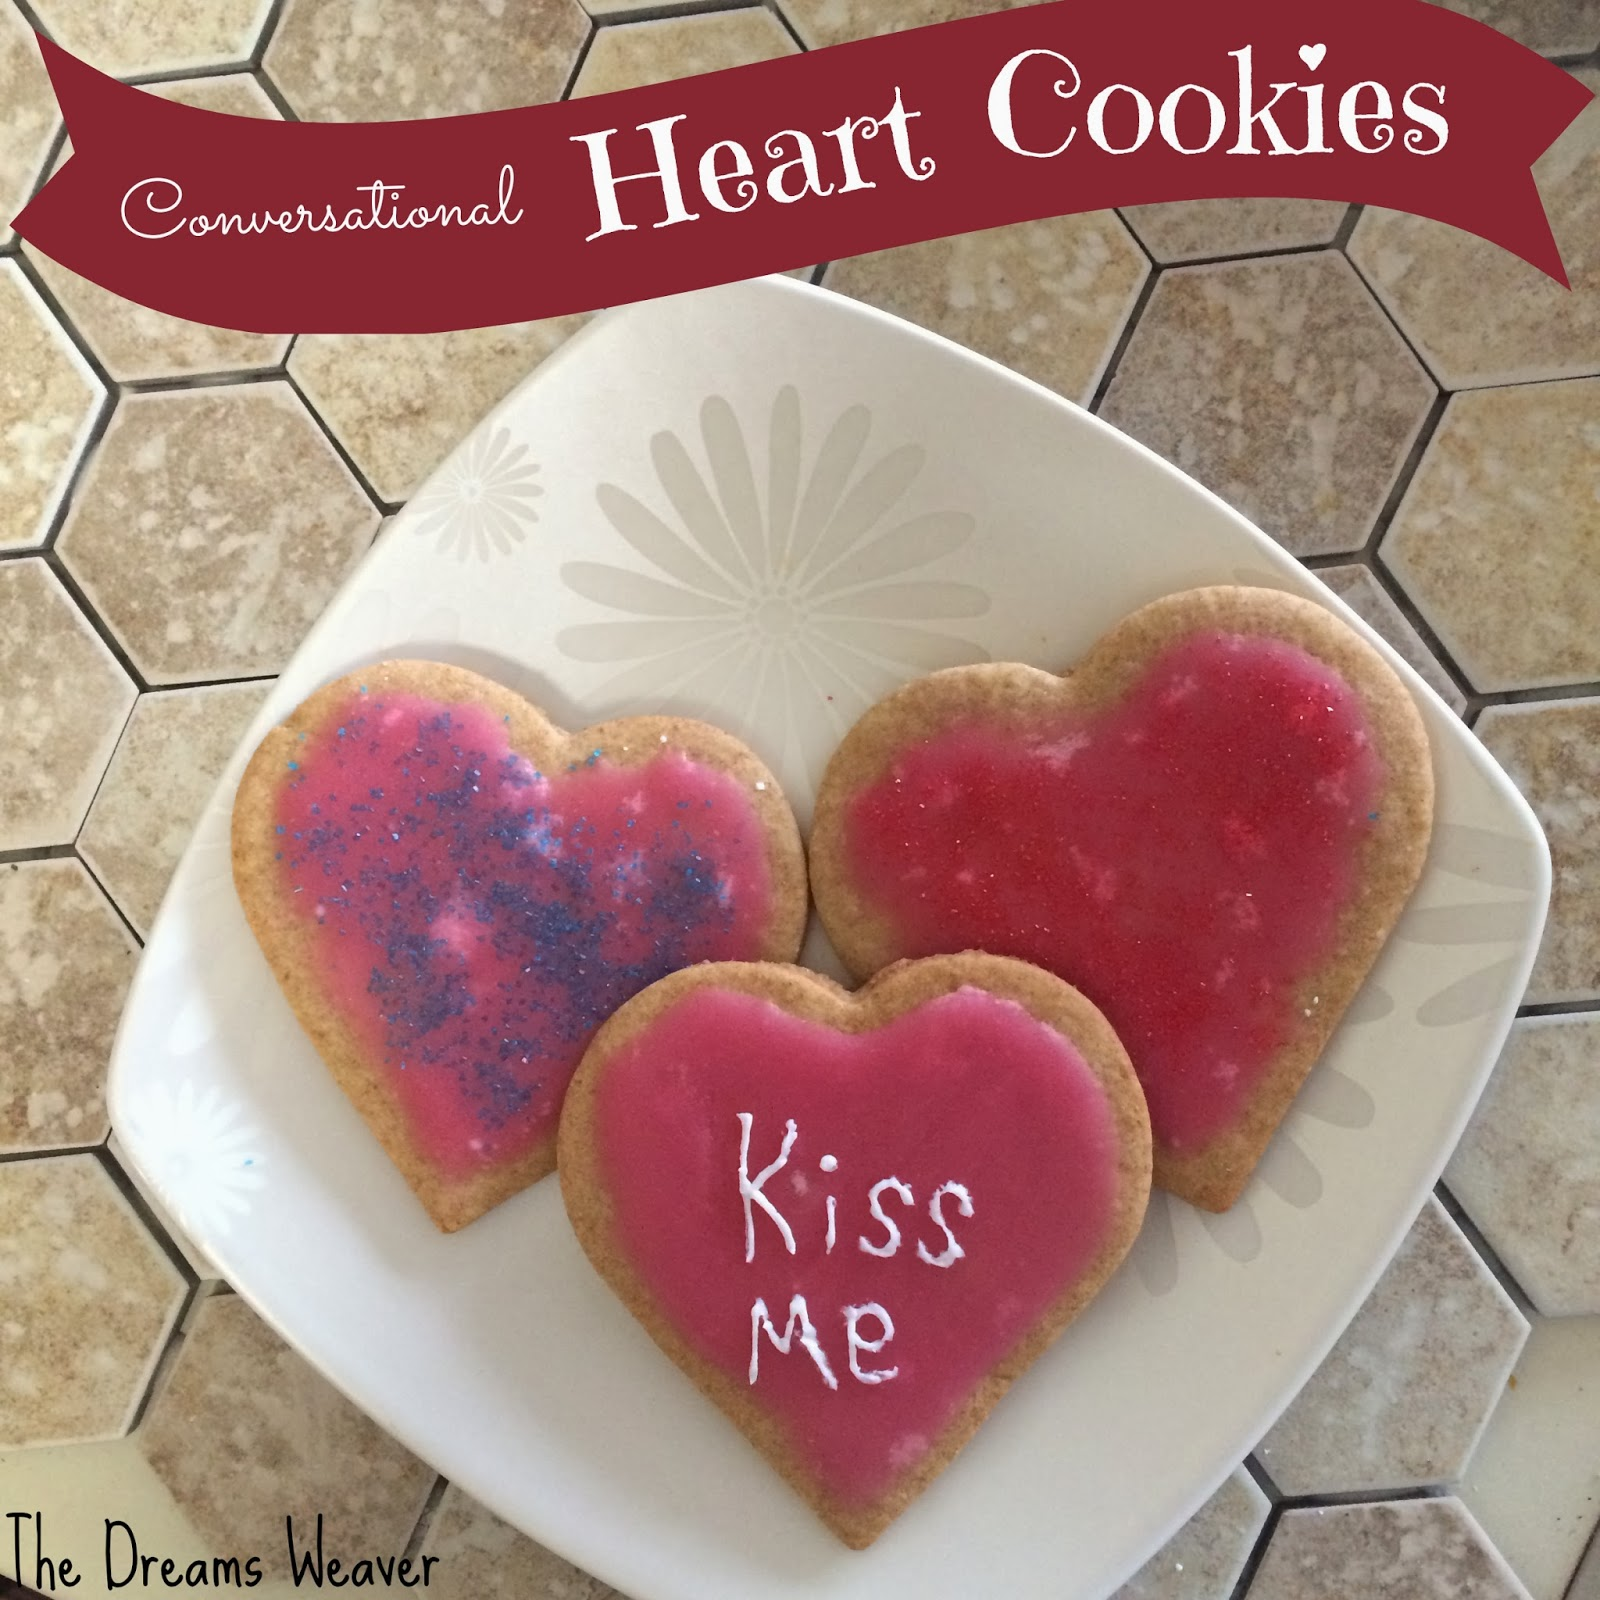 Conversational Heart Cookies